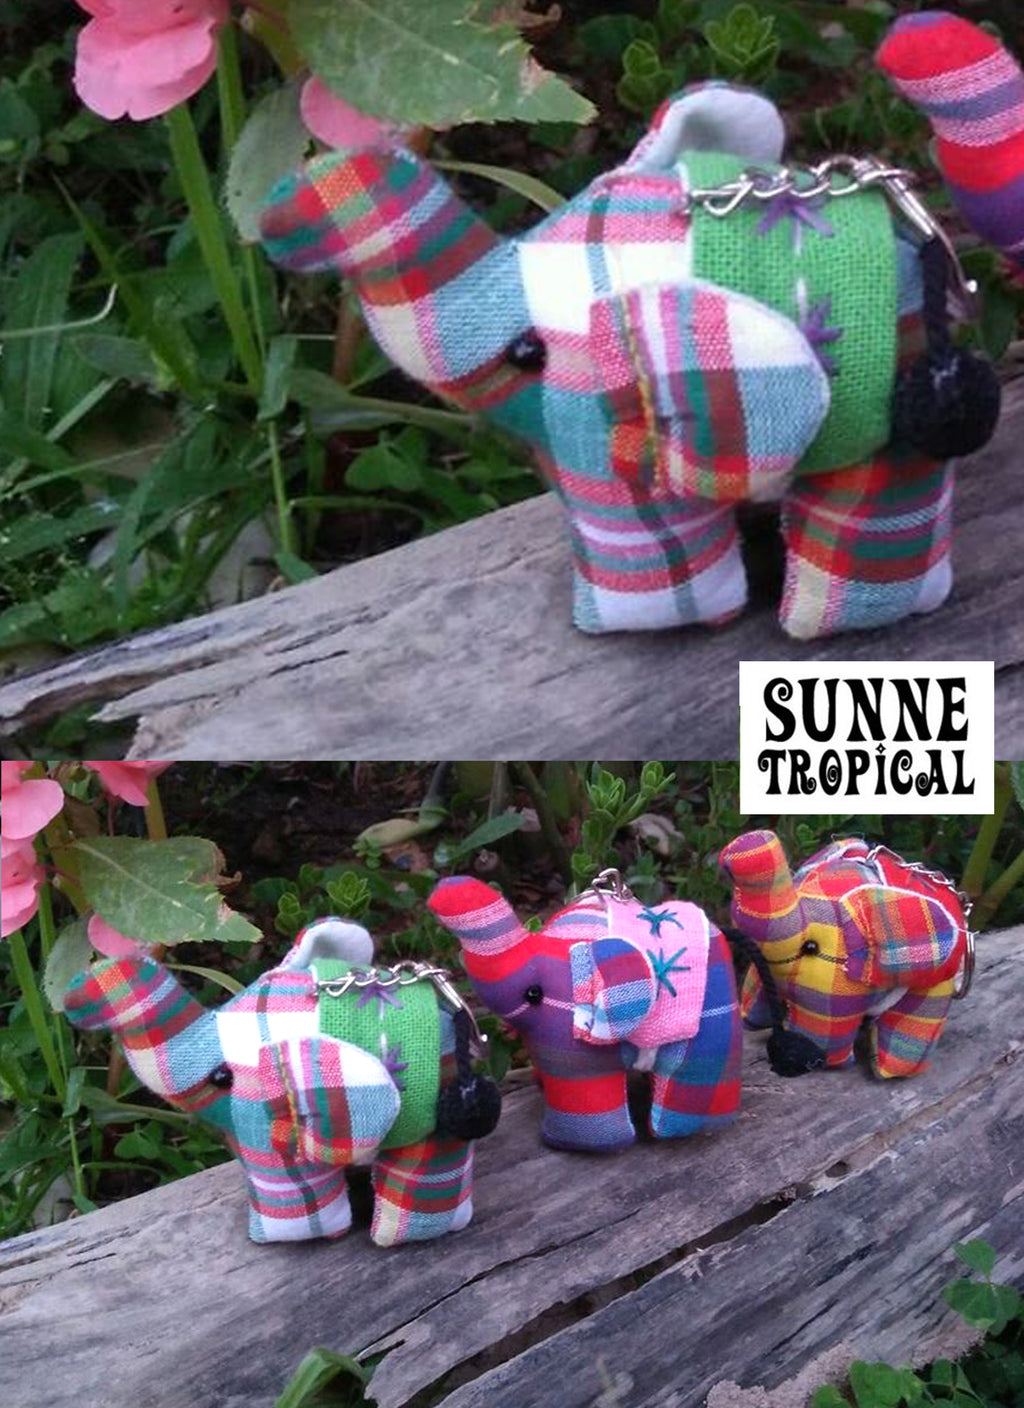 UPCYCLE Handmade Fabric Keychain ANIMAL Charm Key Rings Holder Bag Accessories Handmade Gift! so CUTE RANDOM COLOR (Pack of 4) - Elephant Natual Cotton PLAID